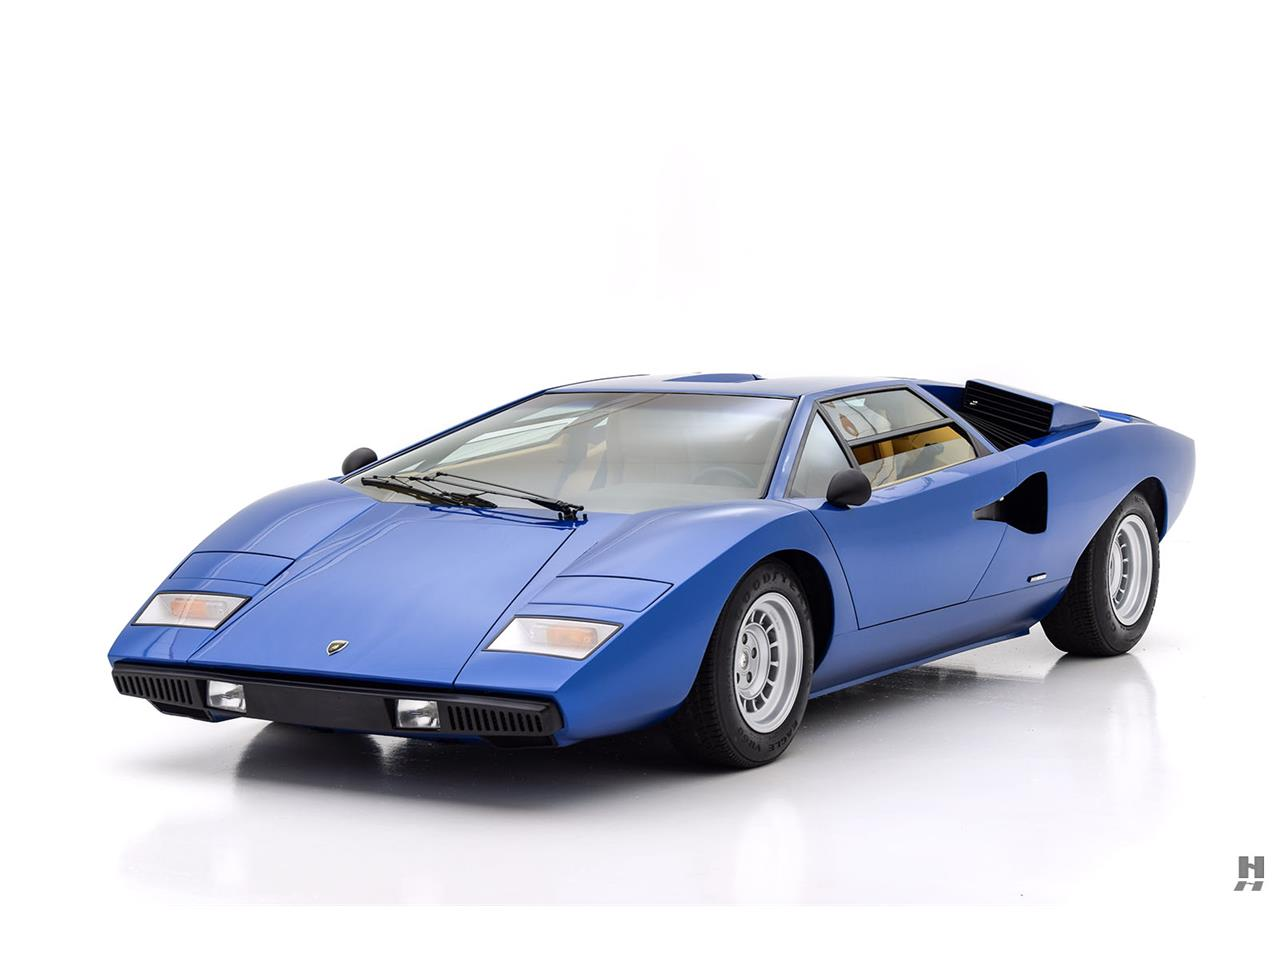 Large Picture of 1975 Countach LP400 located in Saint Louis Missouri - $1,225,000.00 Offered by Hyman Ltd. Classic Cars - OVNJ